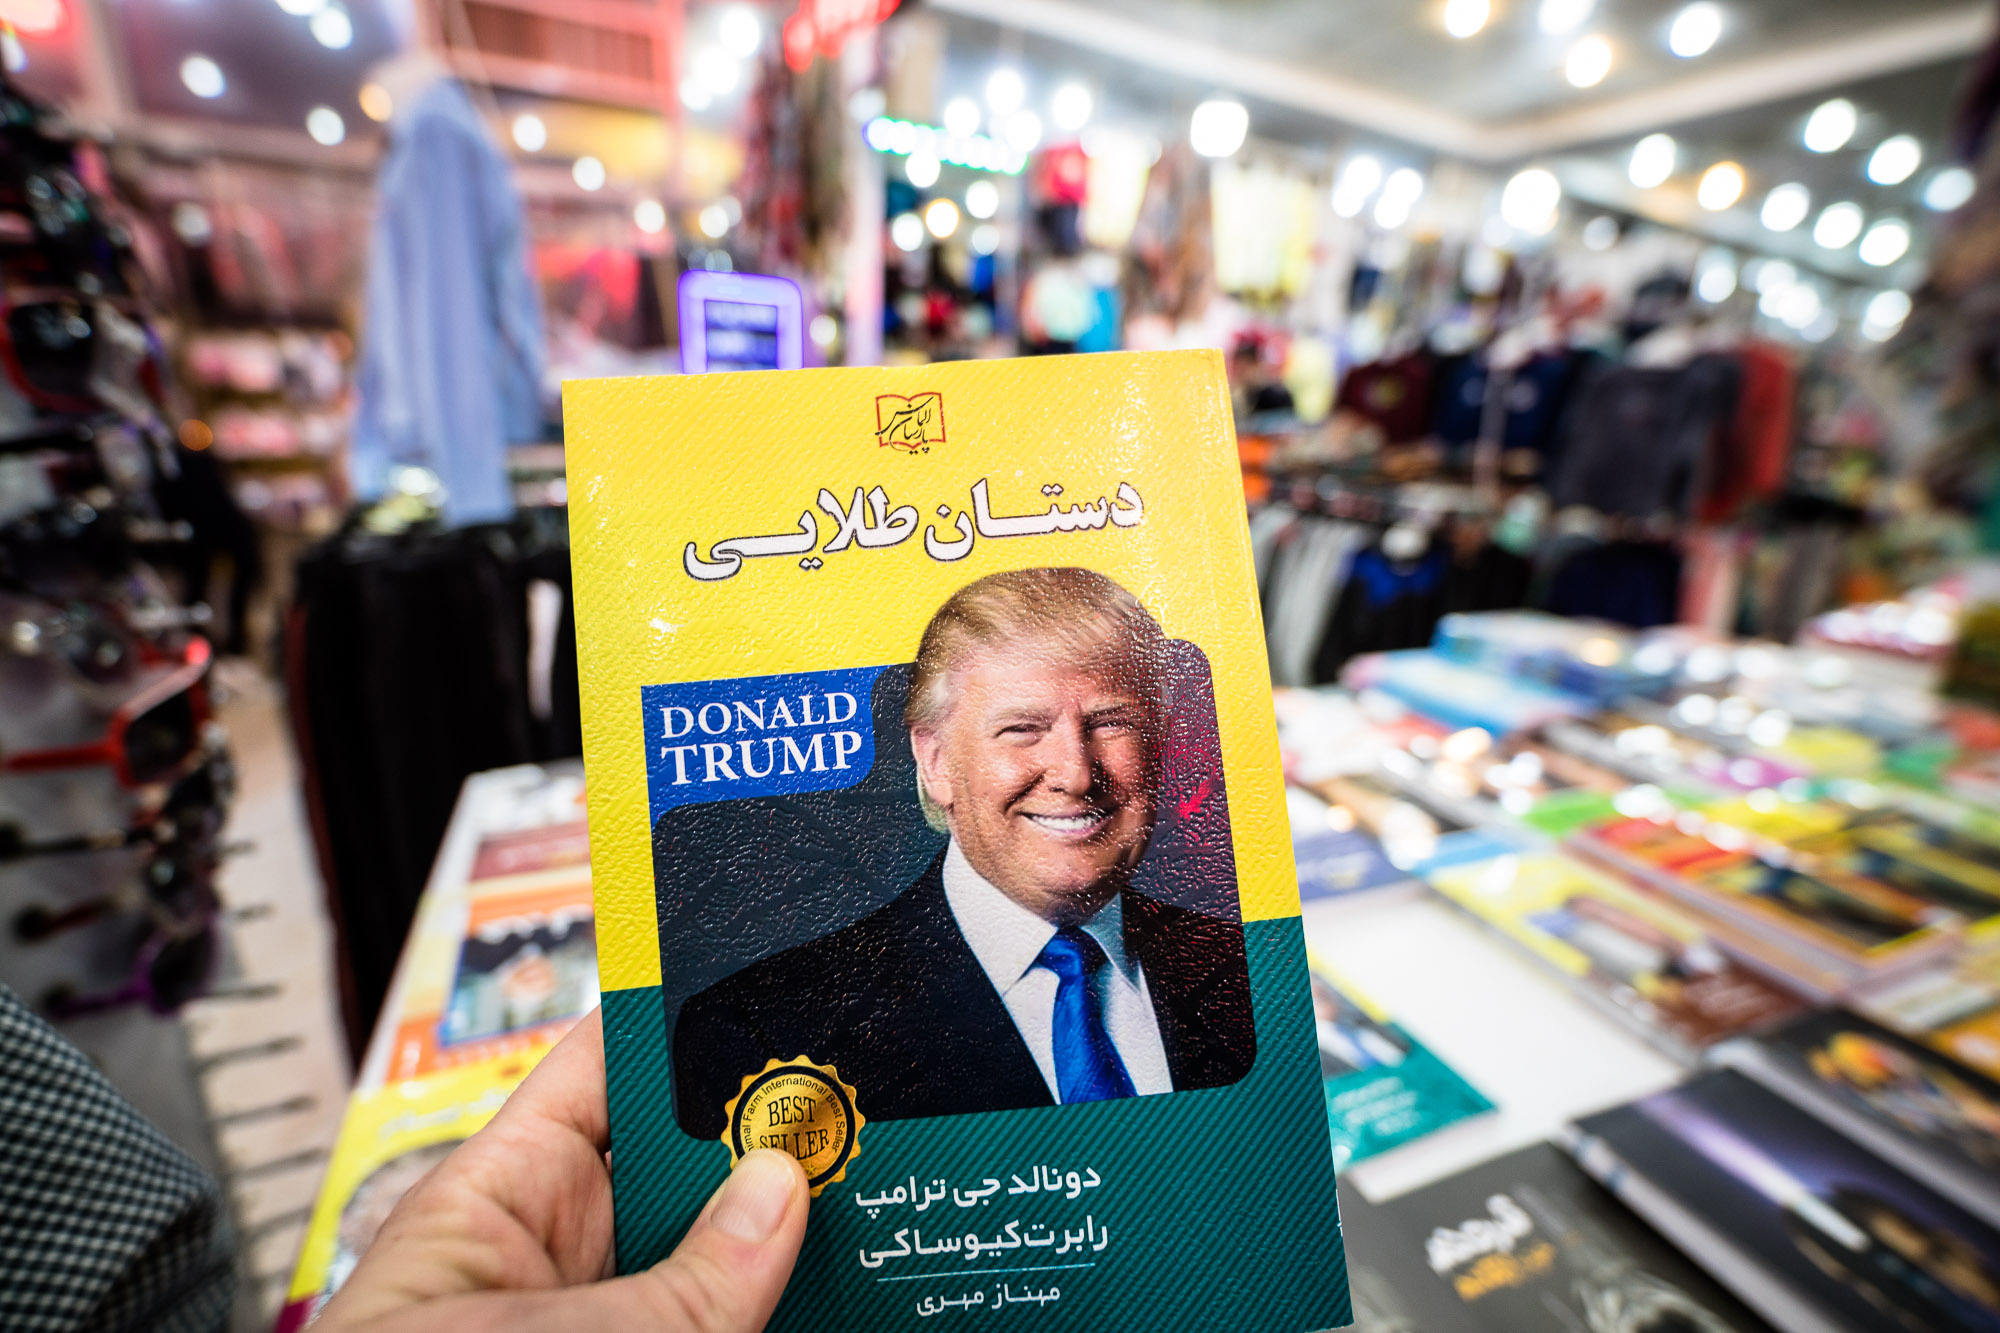 Trump book in Iran